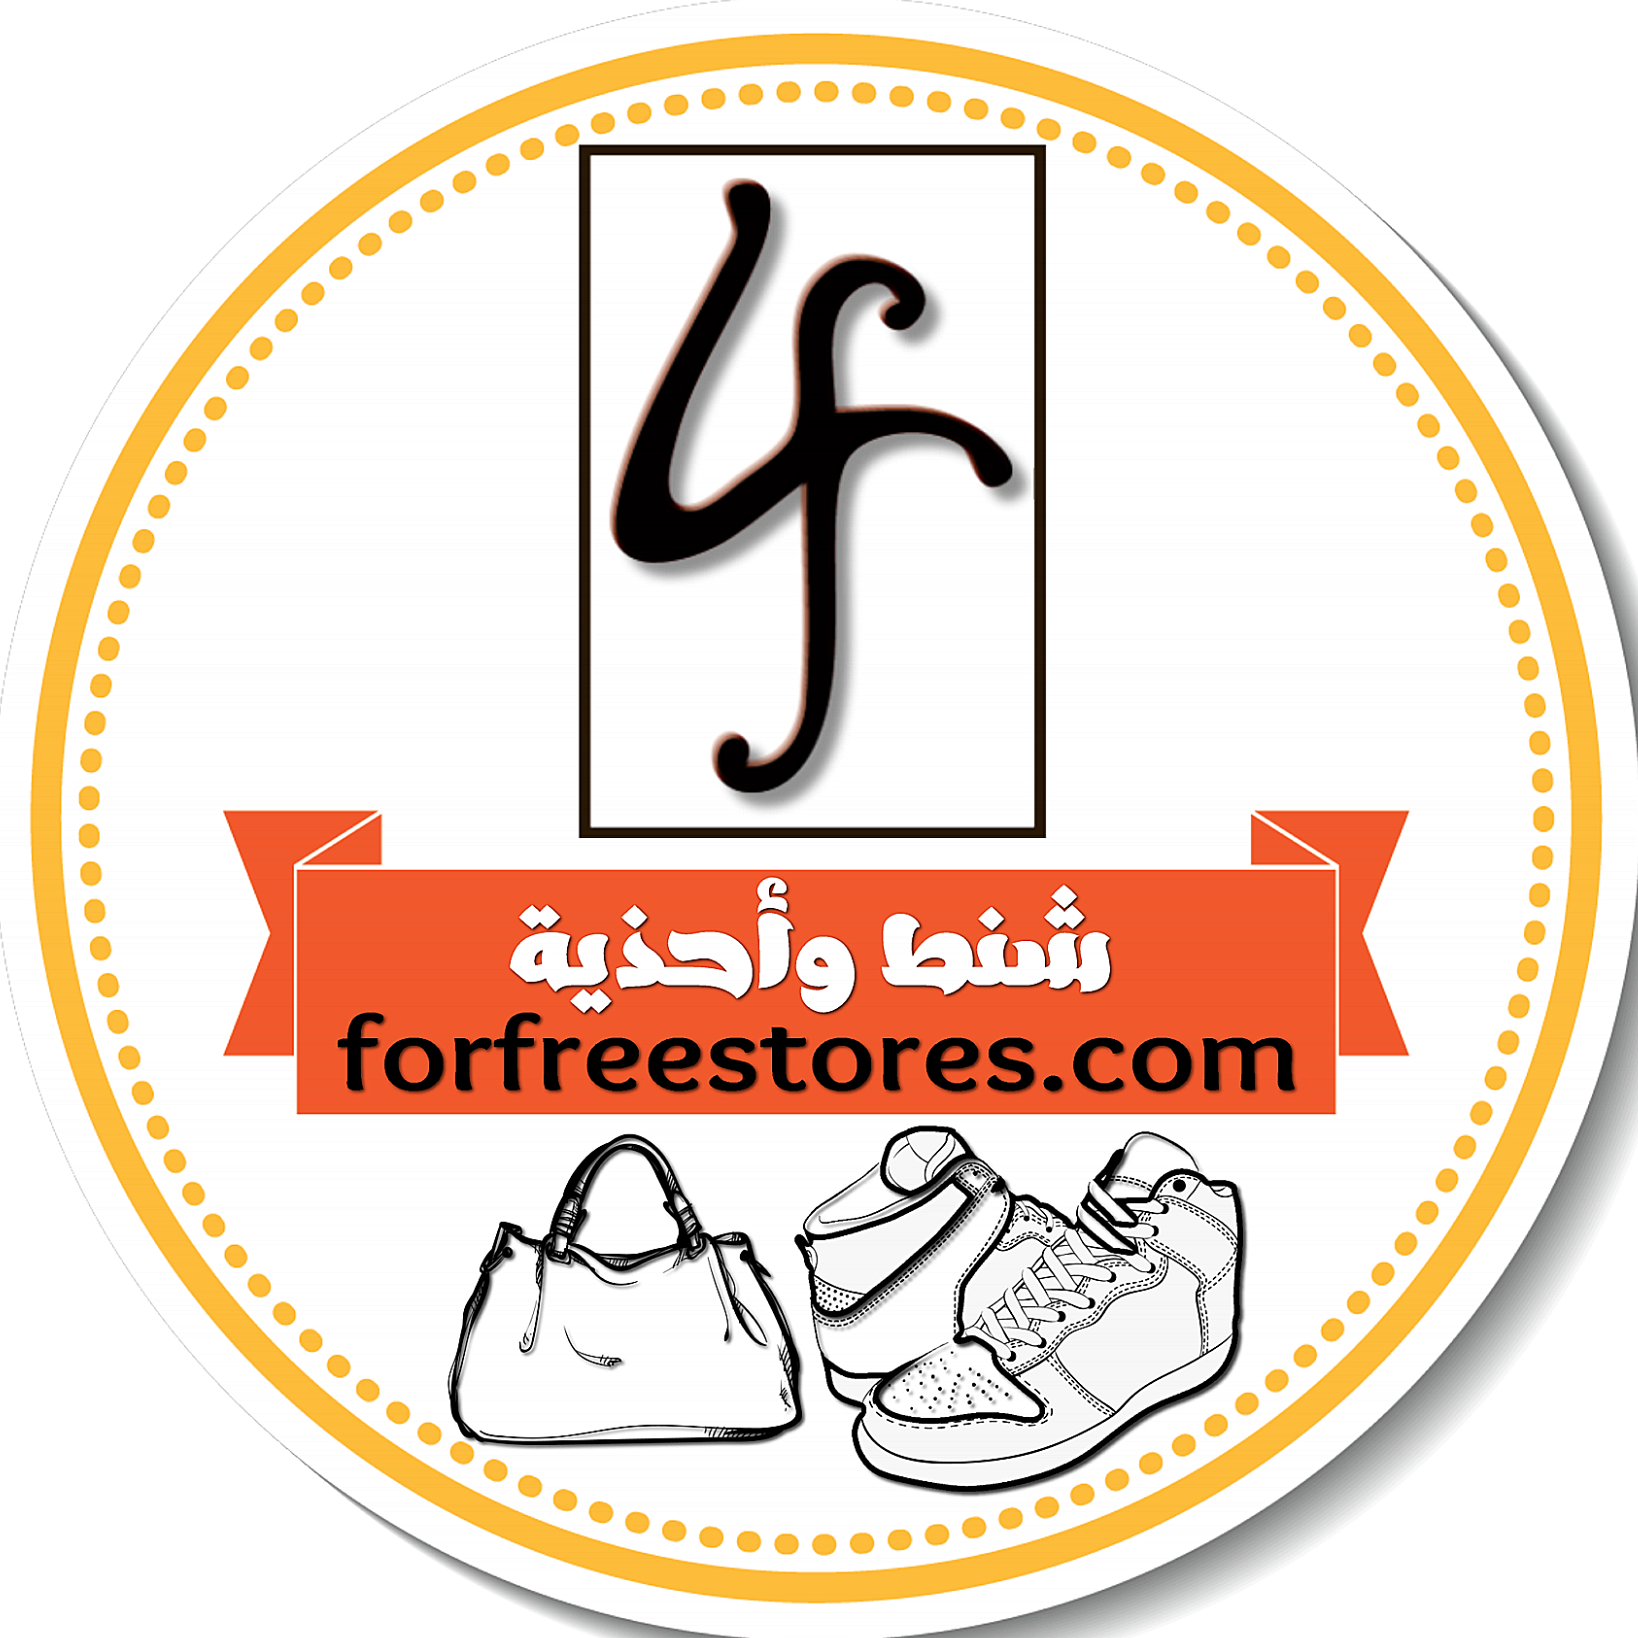 For Free Stores